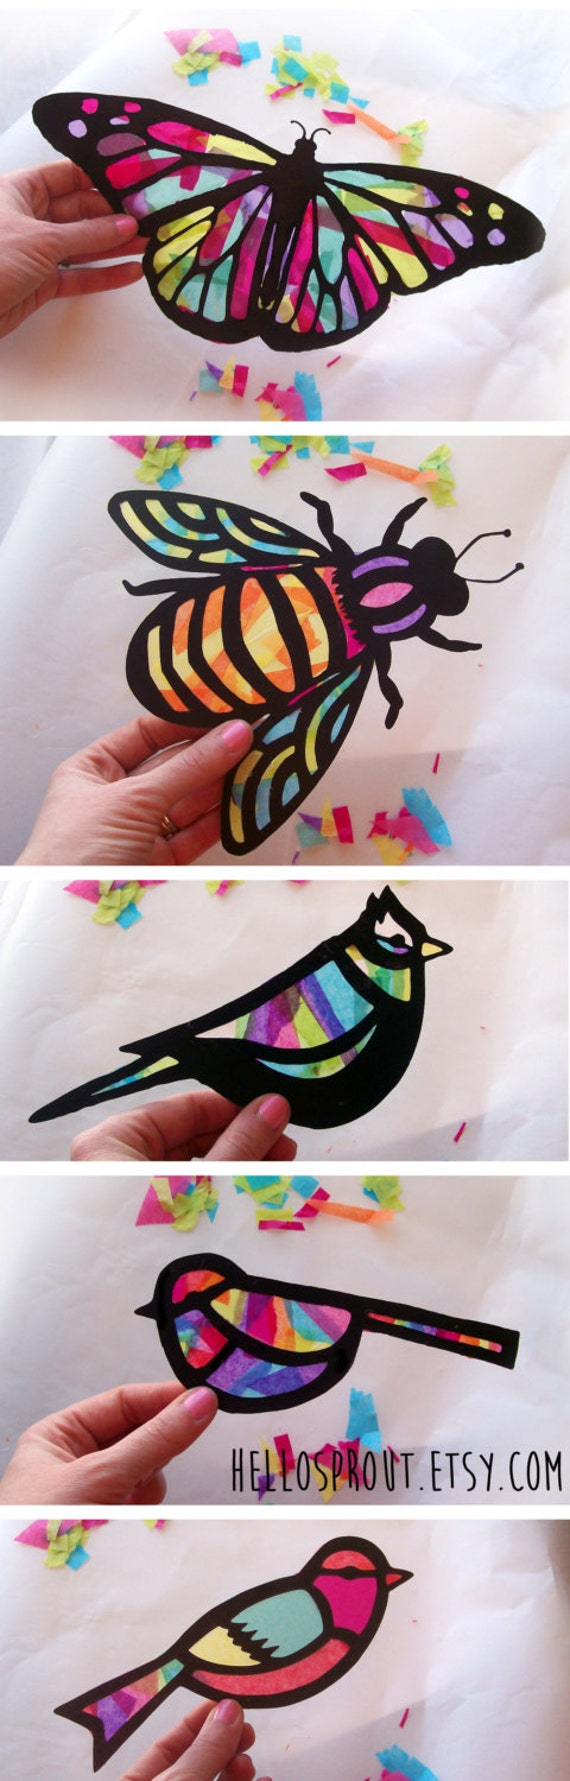 Kids Craft Butterfly Stained Glass Suncatcher Kit With Birds Bees Using Tissue Paper Arts And